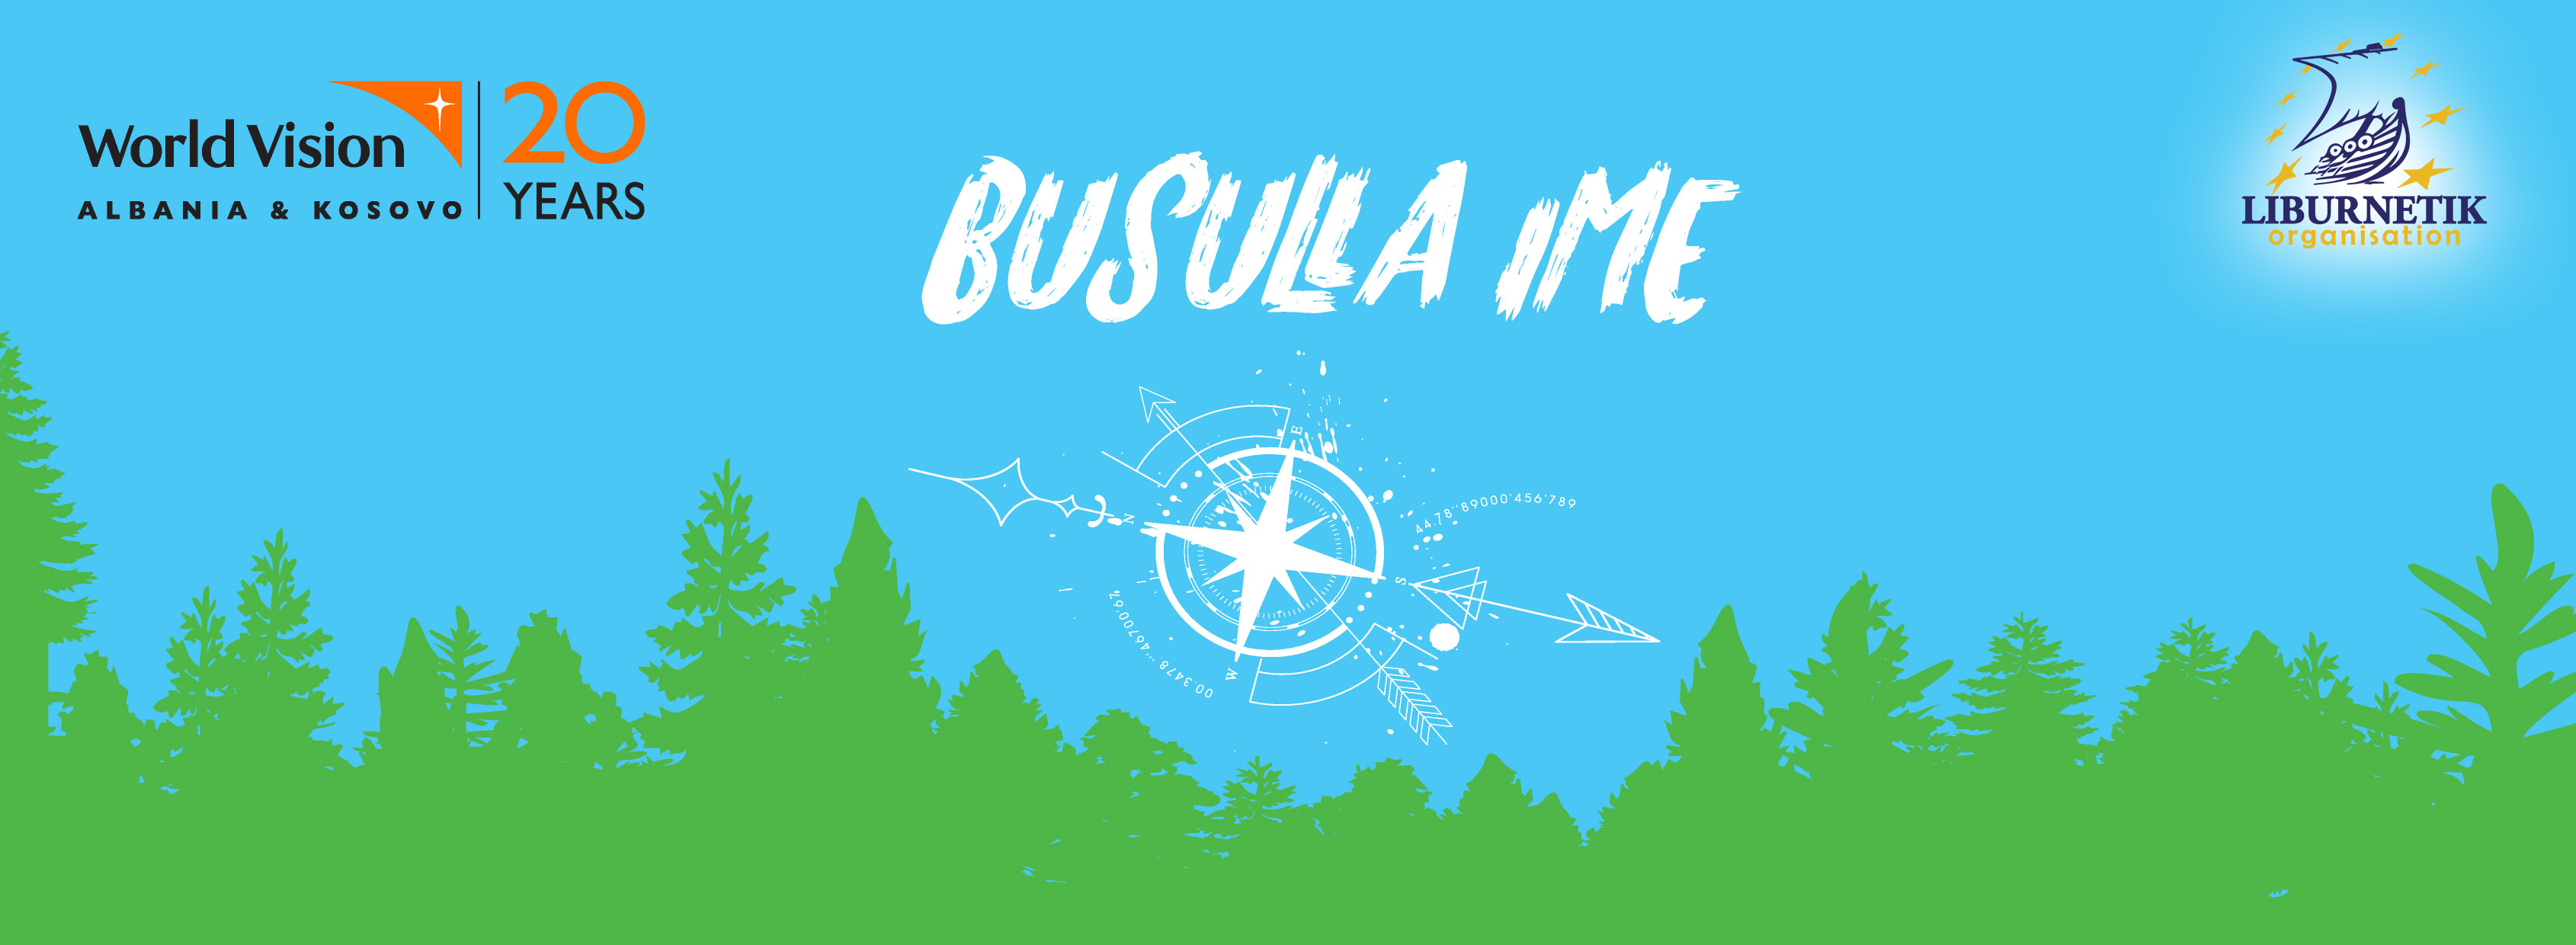 busullaime-cover-web